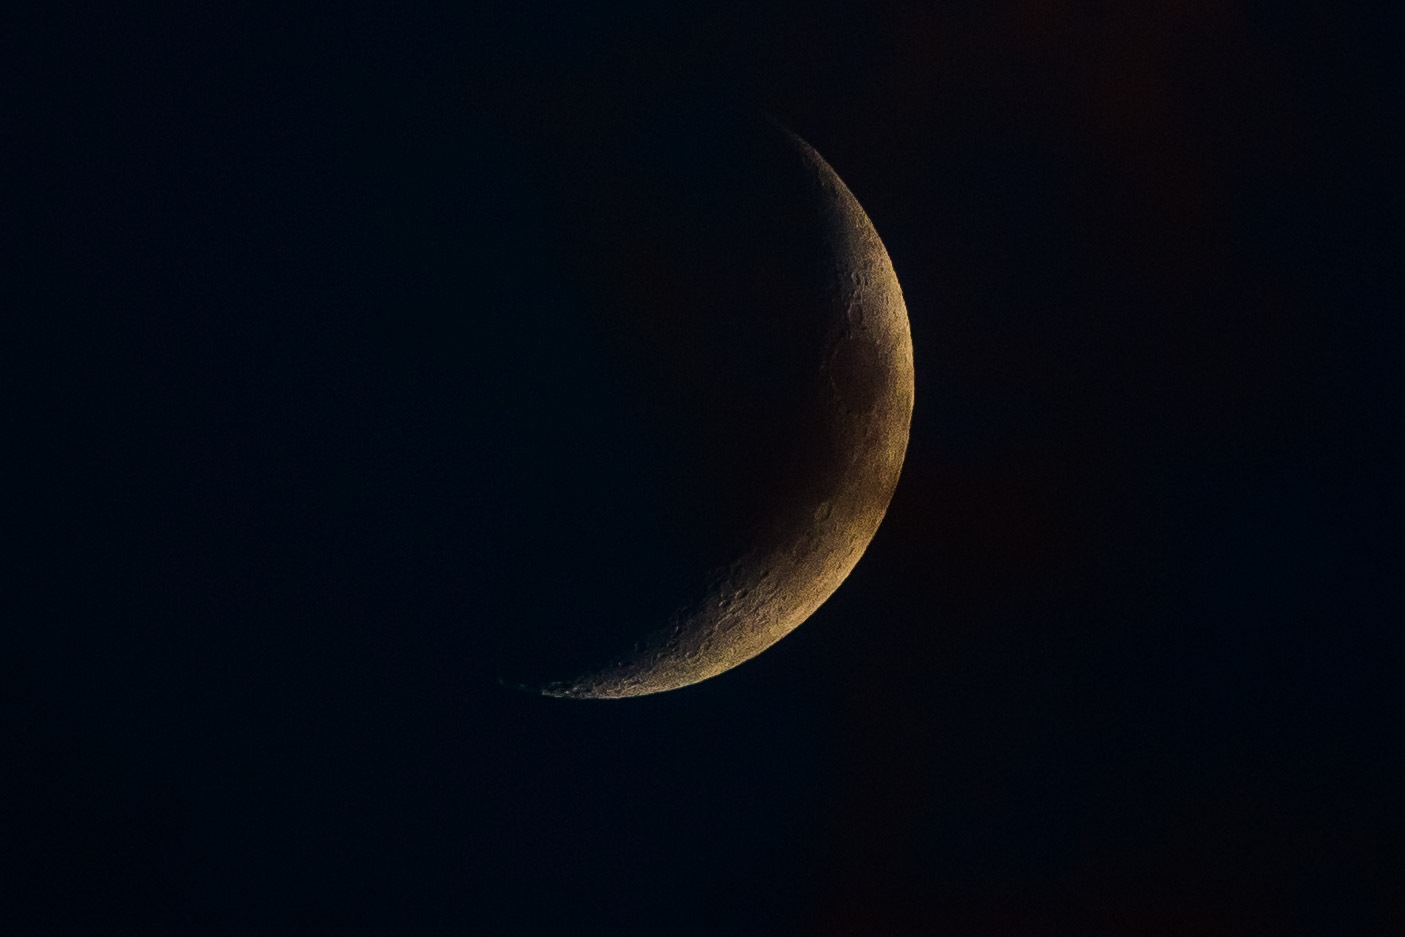 moon by Alexander Magerl